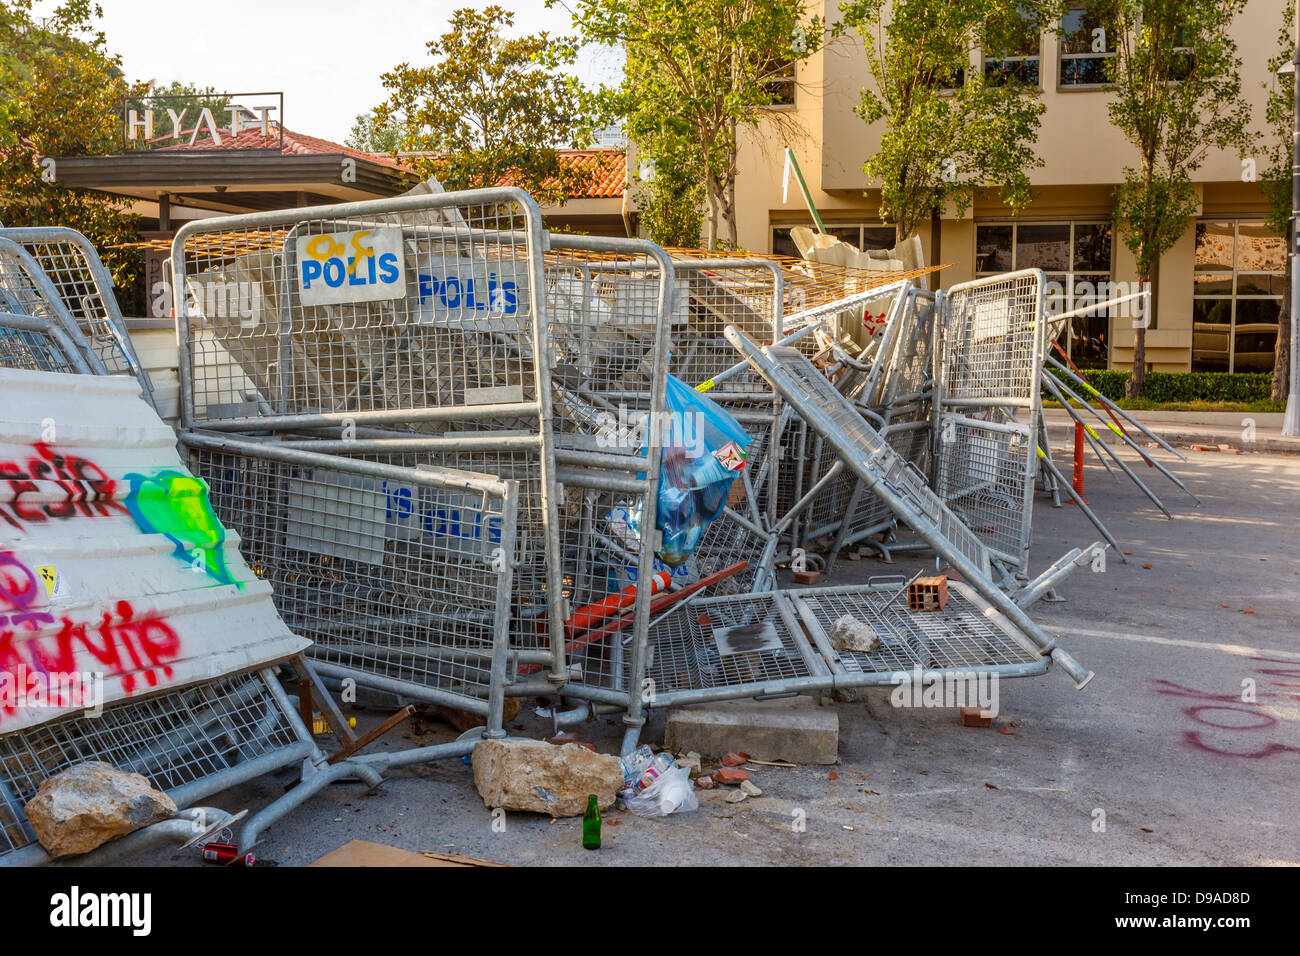 Barricade in front of the Hyatt Regency Hotel during Taksim Gezi Park protests, Istanbul, Turkey - Stock Image